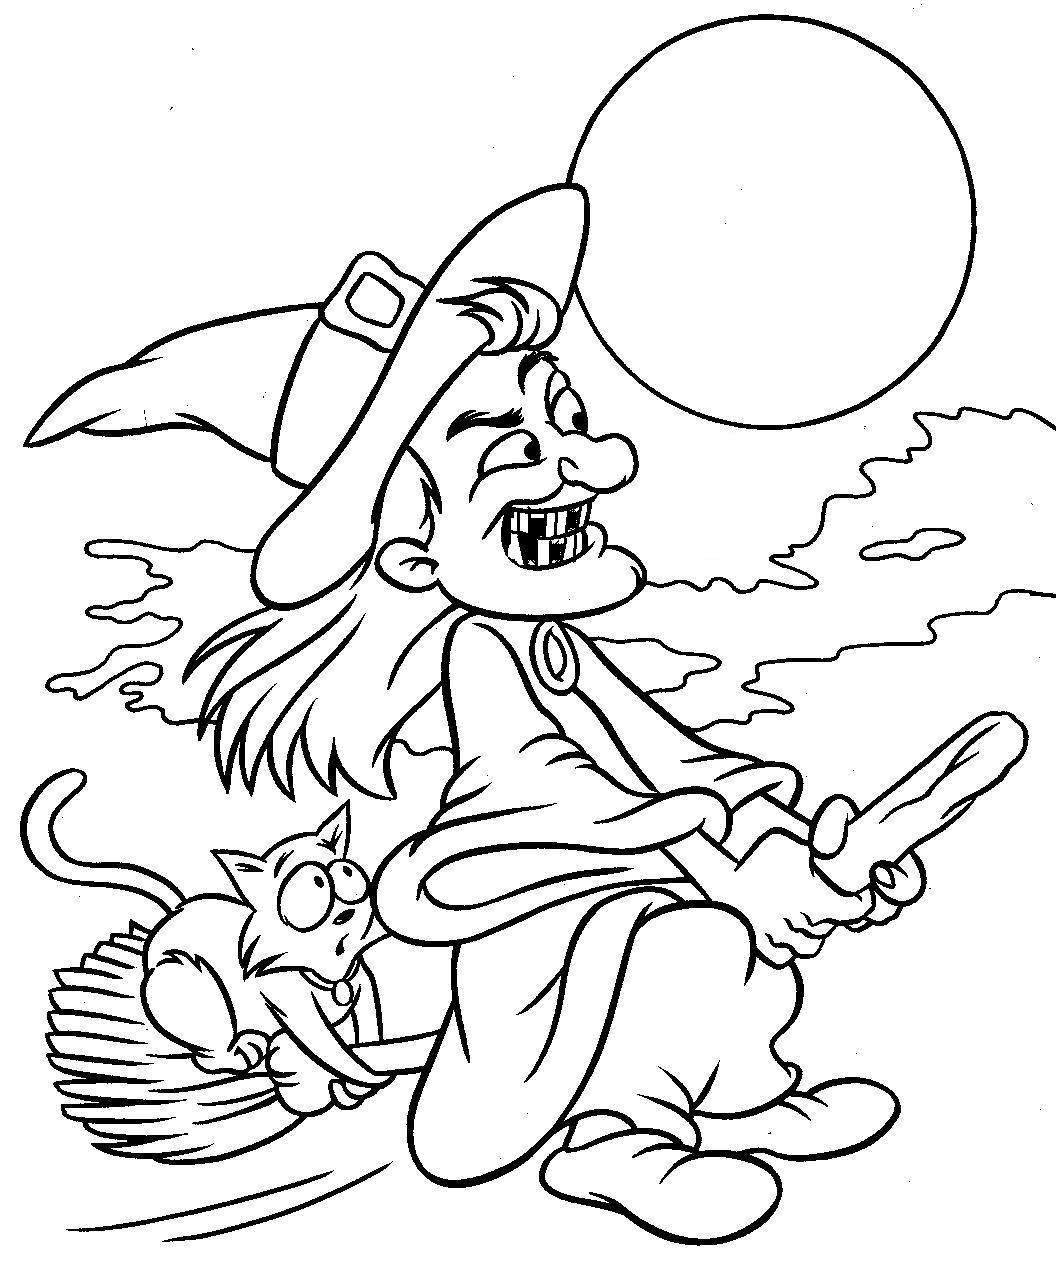 1056x1264 Halloween Witch Coloring Page Free Design Templates New